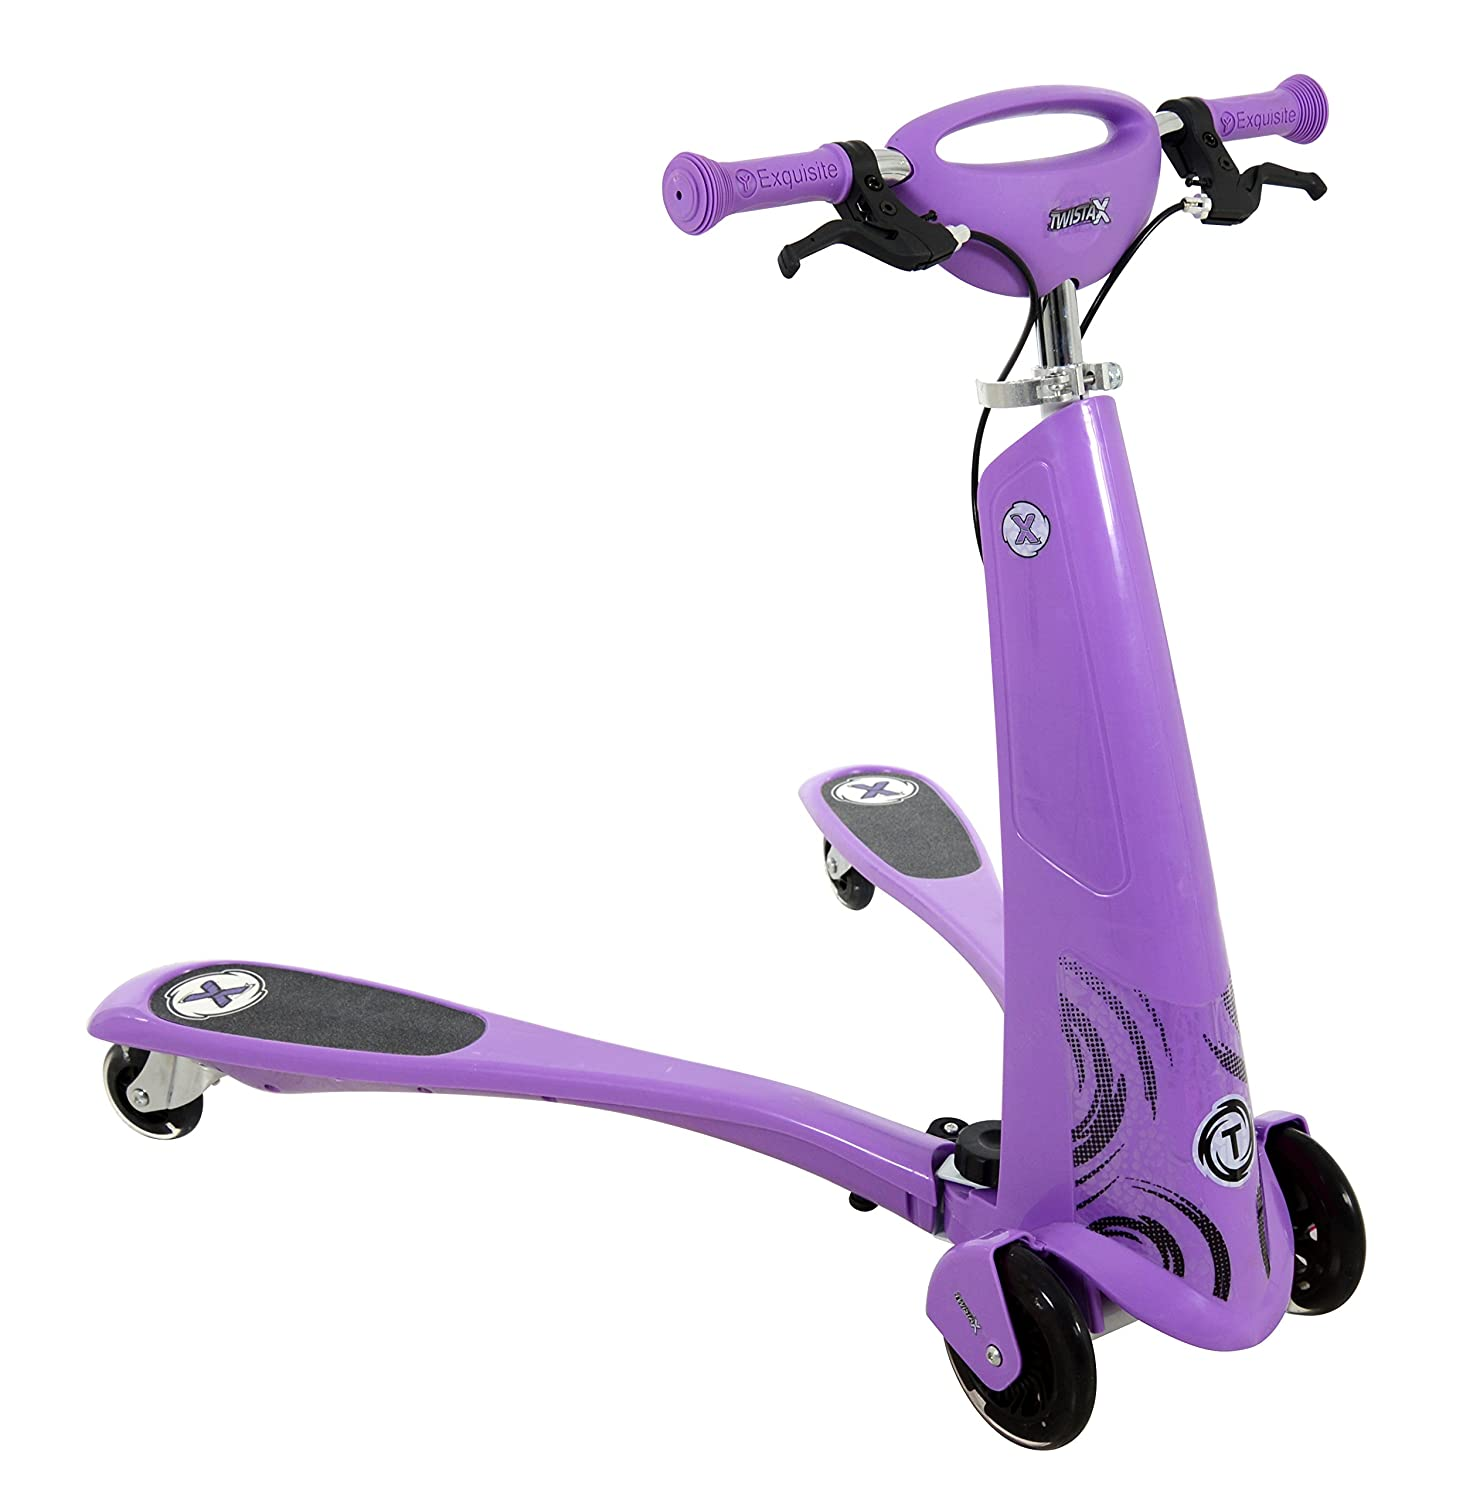 Twista X Children/'s Kids Motion Propelled Ride On Scooter From 3 Years Old